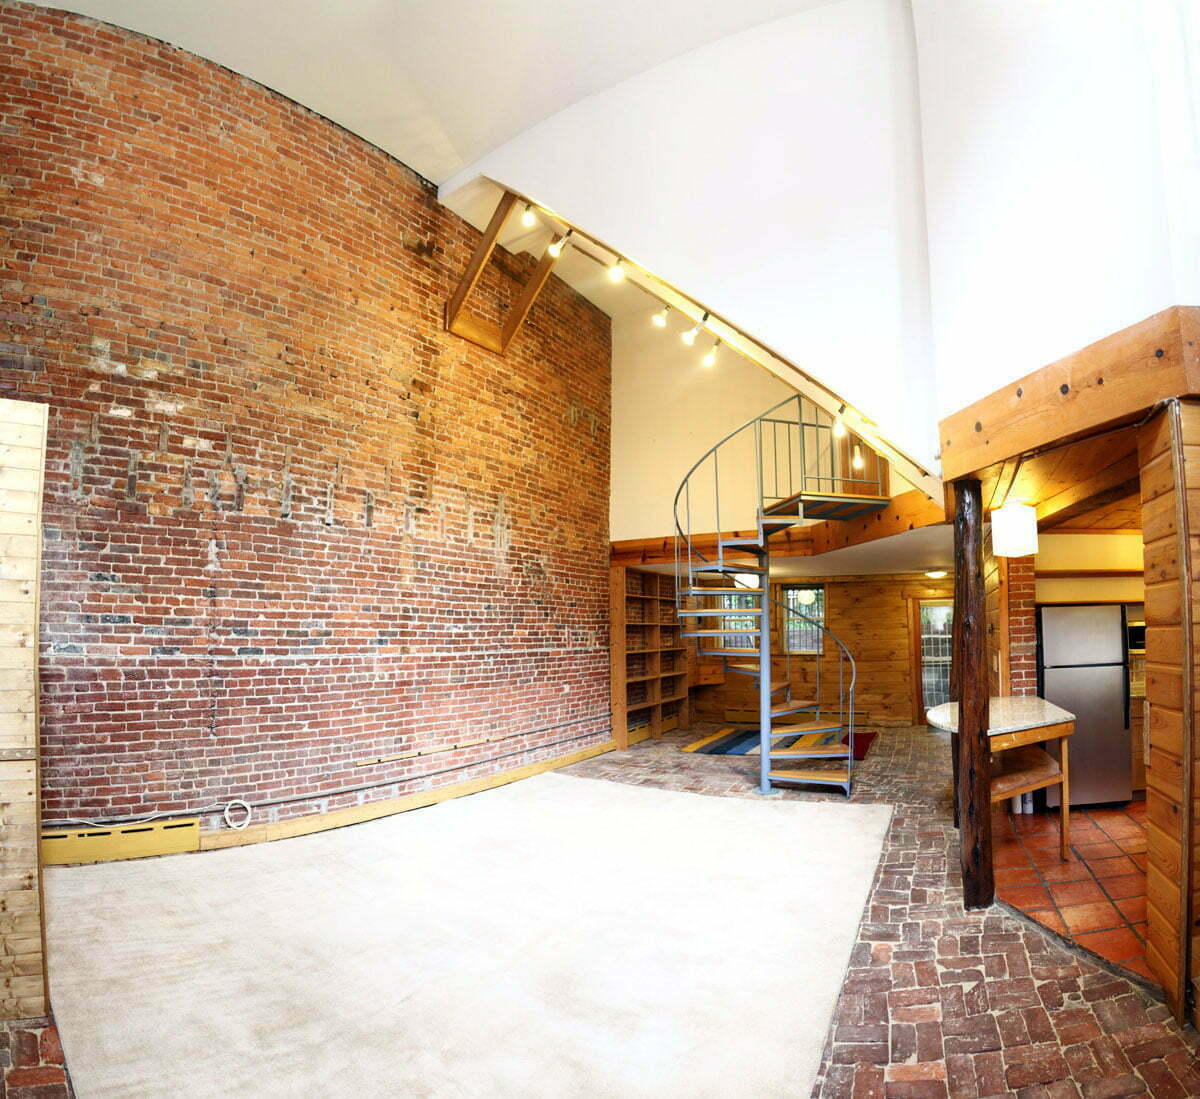 A panoramic photograph of a large loft basement apartment in Washington DC.